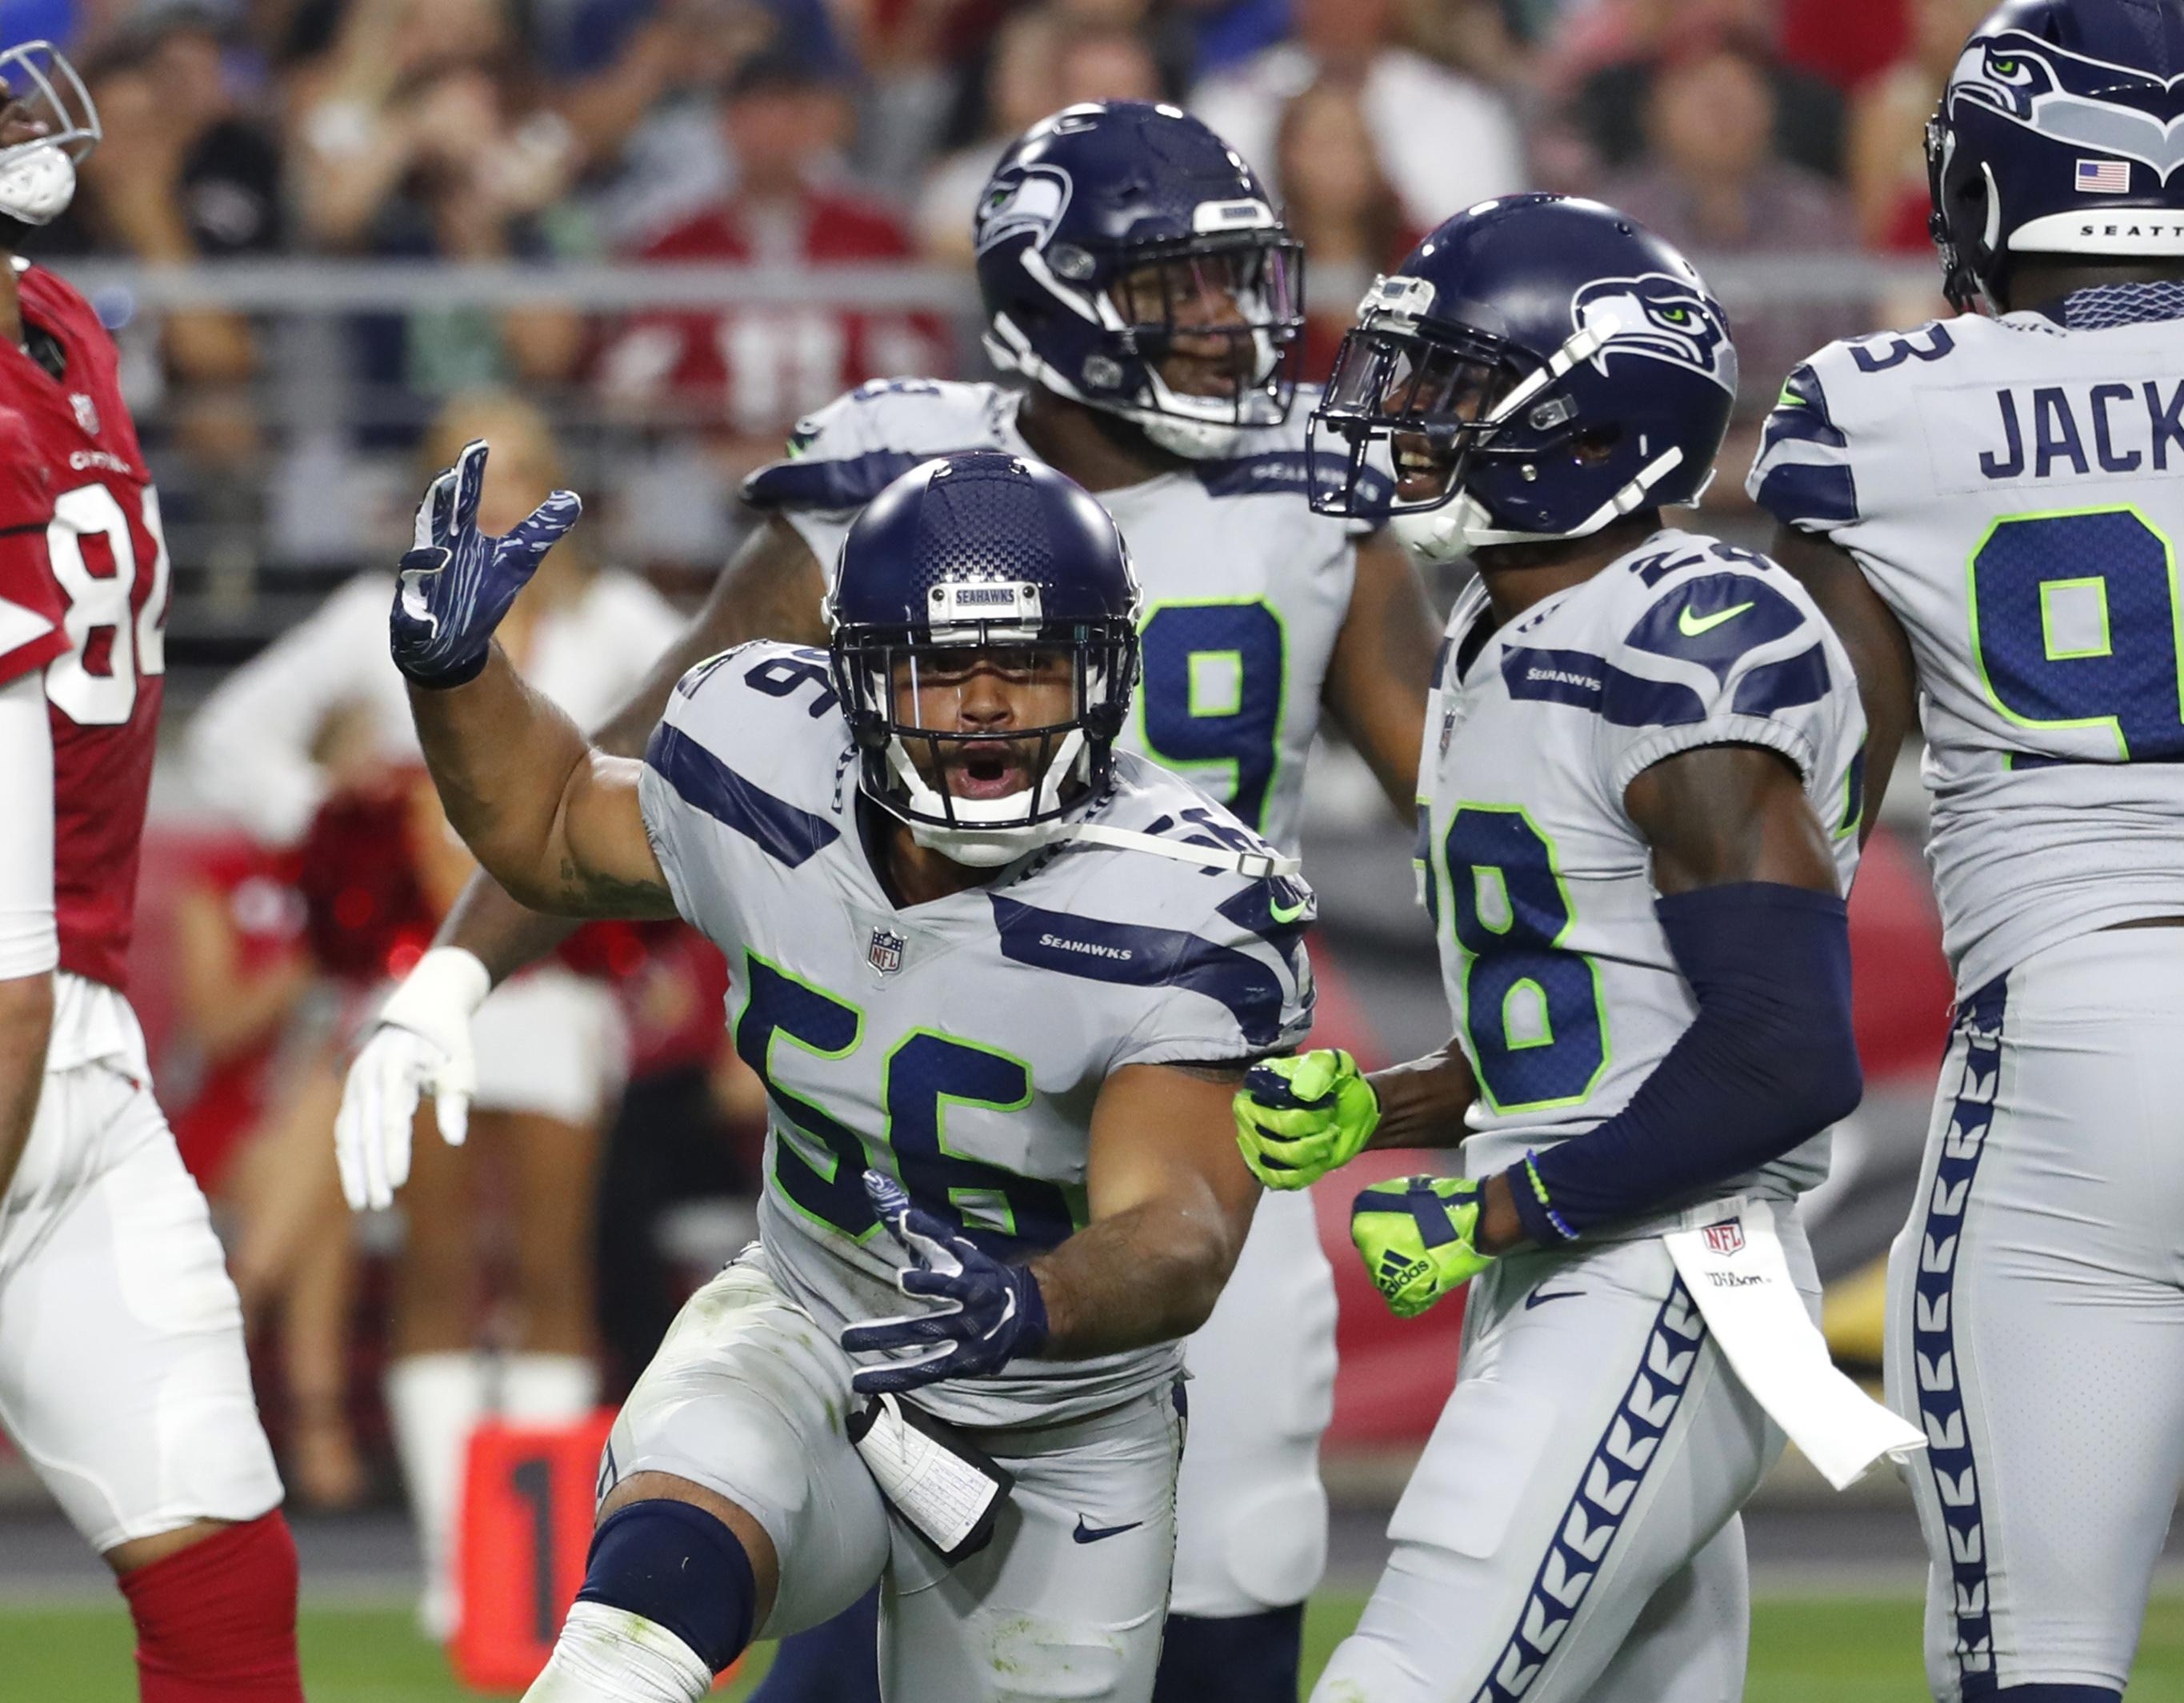 dcc133830 Seattle Seahawks linebacker Mychal Kendricks gestures during the team s NFL  football game against the Arizona Cardinals